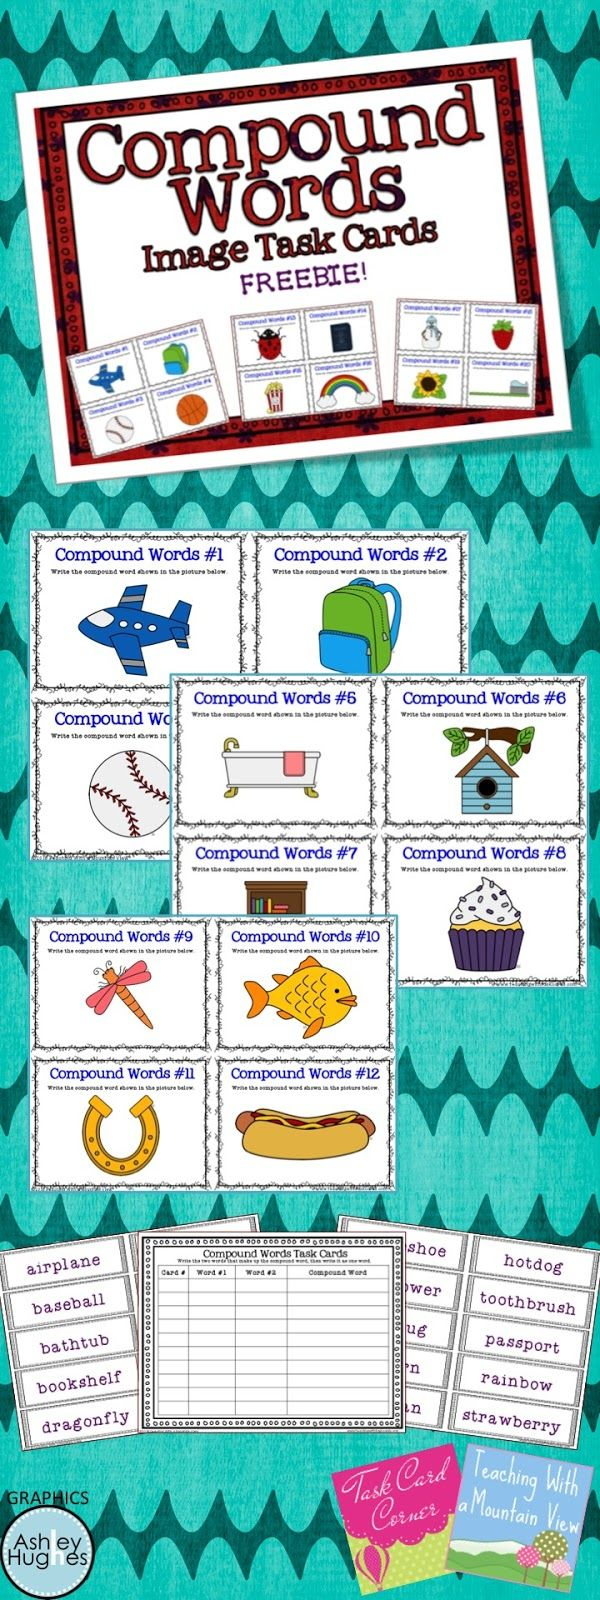 121 best First grade images on Pinterest | Teaching reading, Guided ...